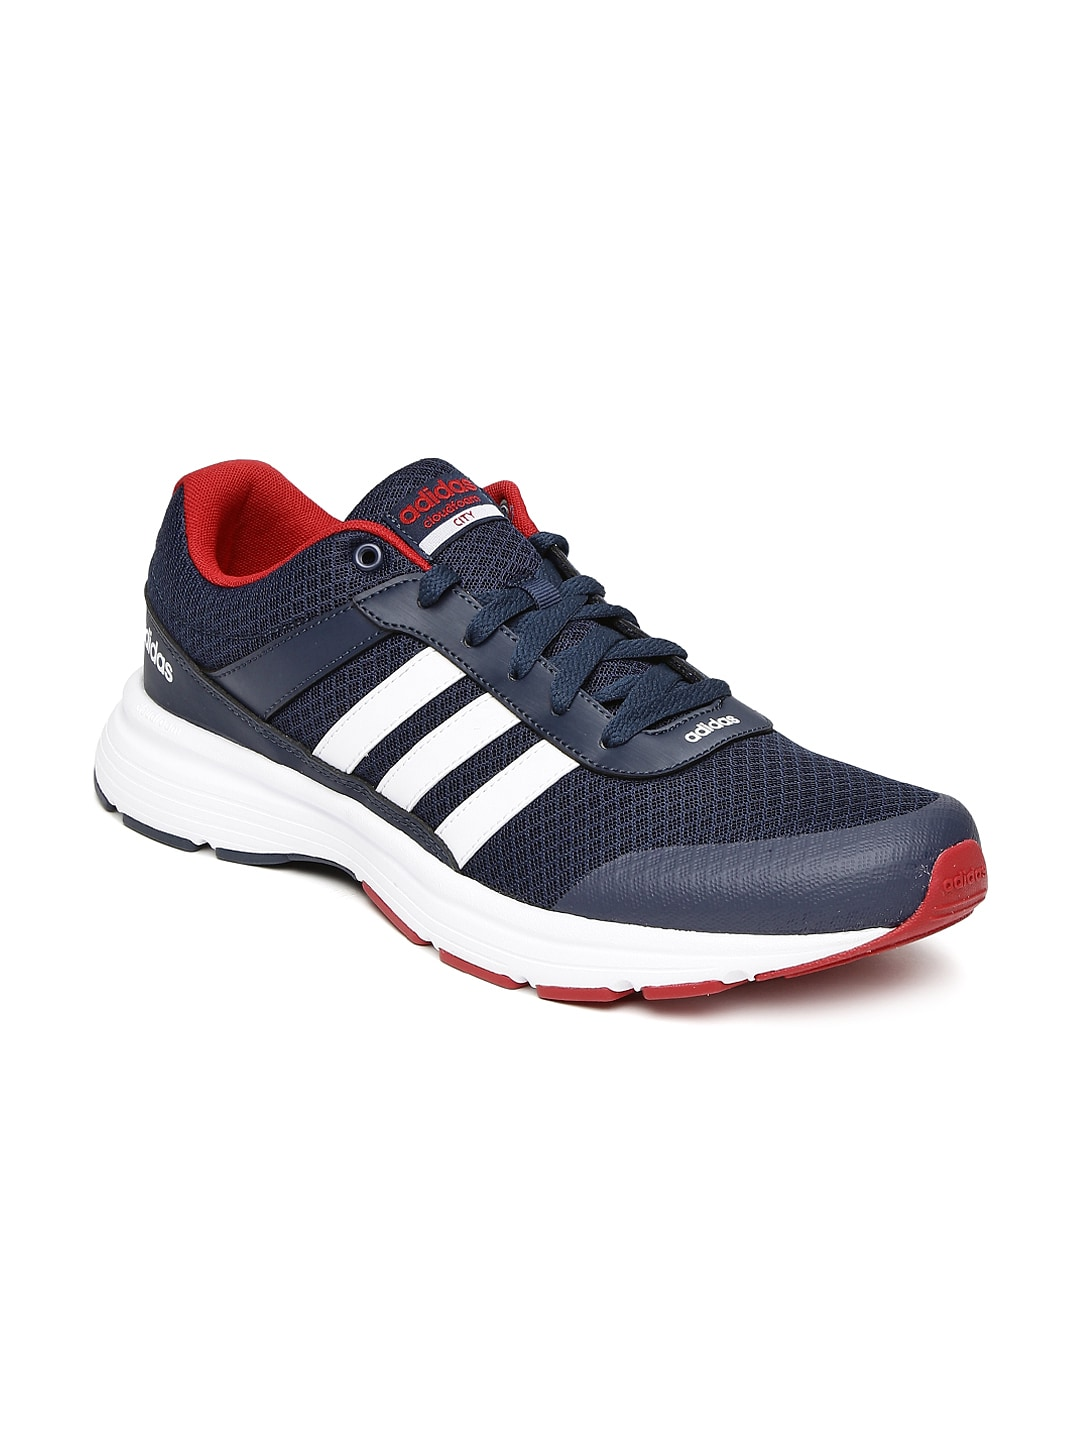 online retailer f6360 a8cee Adidas aq1345 Neo Men Navy Cloudfoam Vs City Sneakers- Price in India